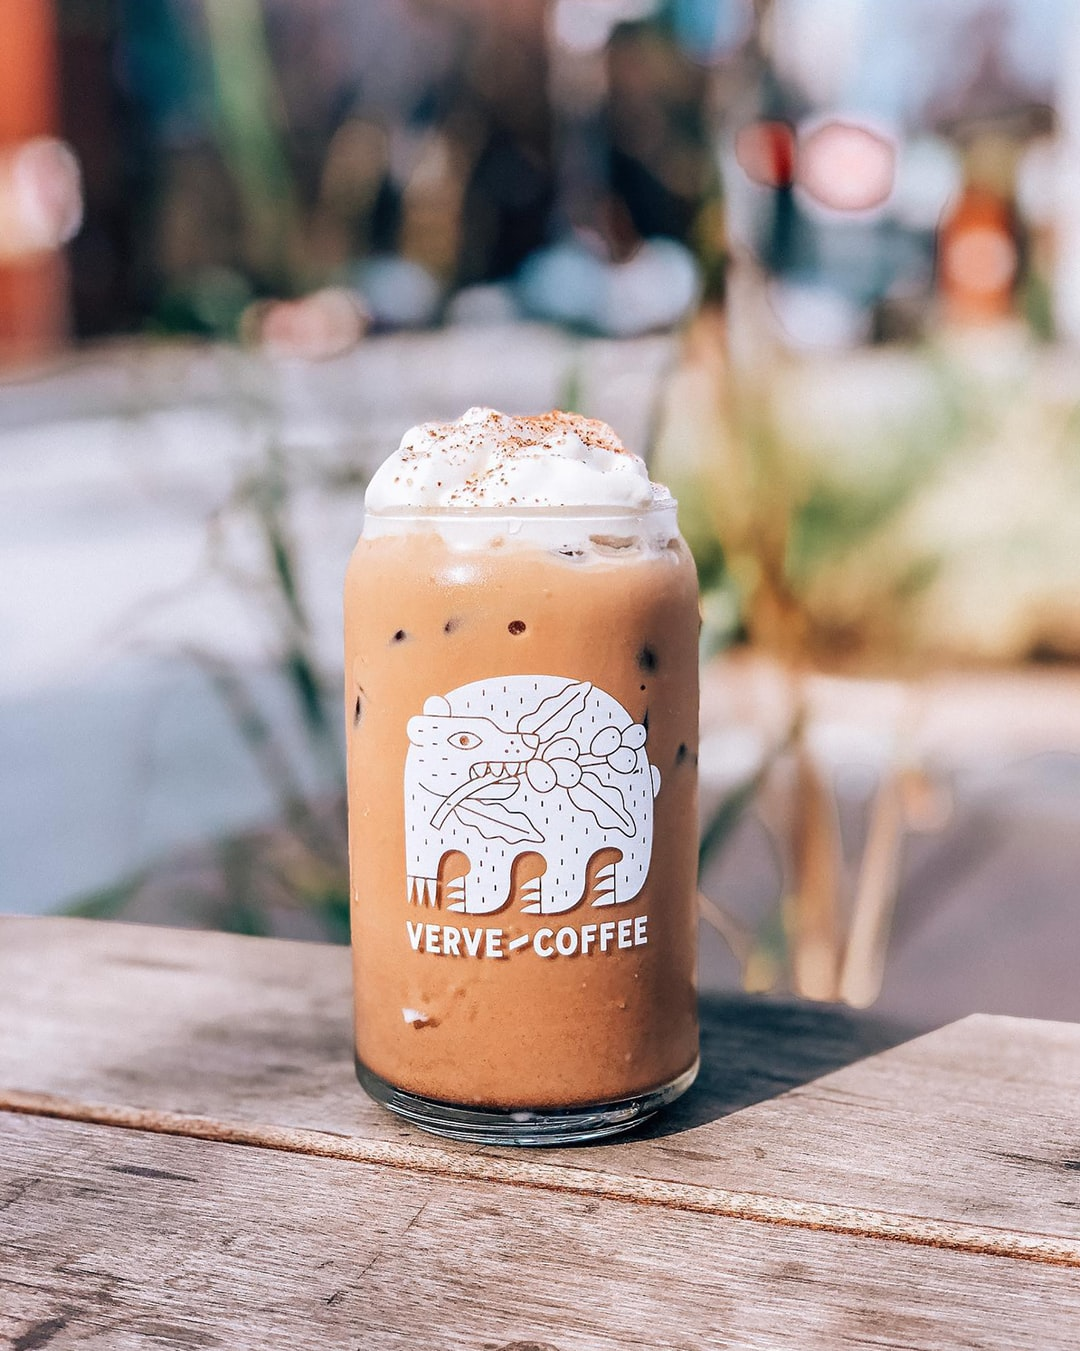 An iced mocha topped with whipped cream and sprinkled with chocolate powder in a glass cup on an outdoor wooden table.